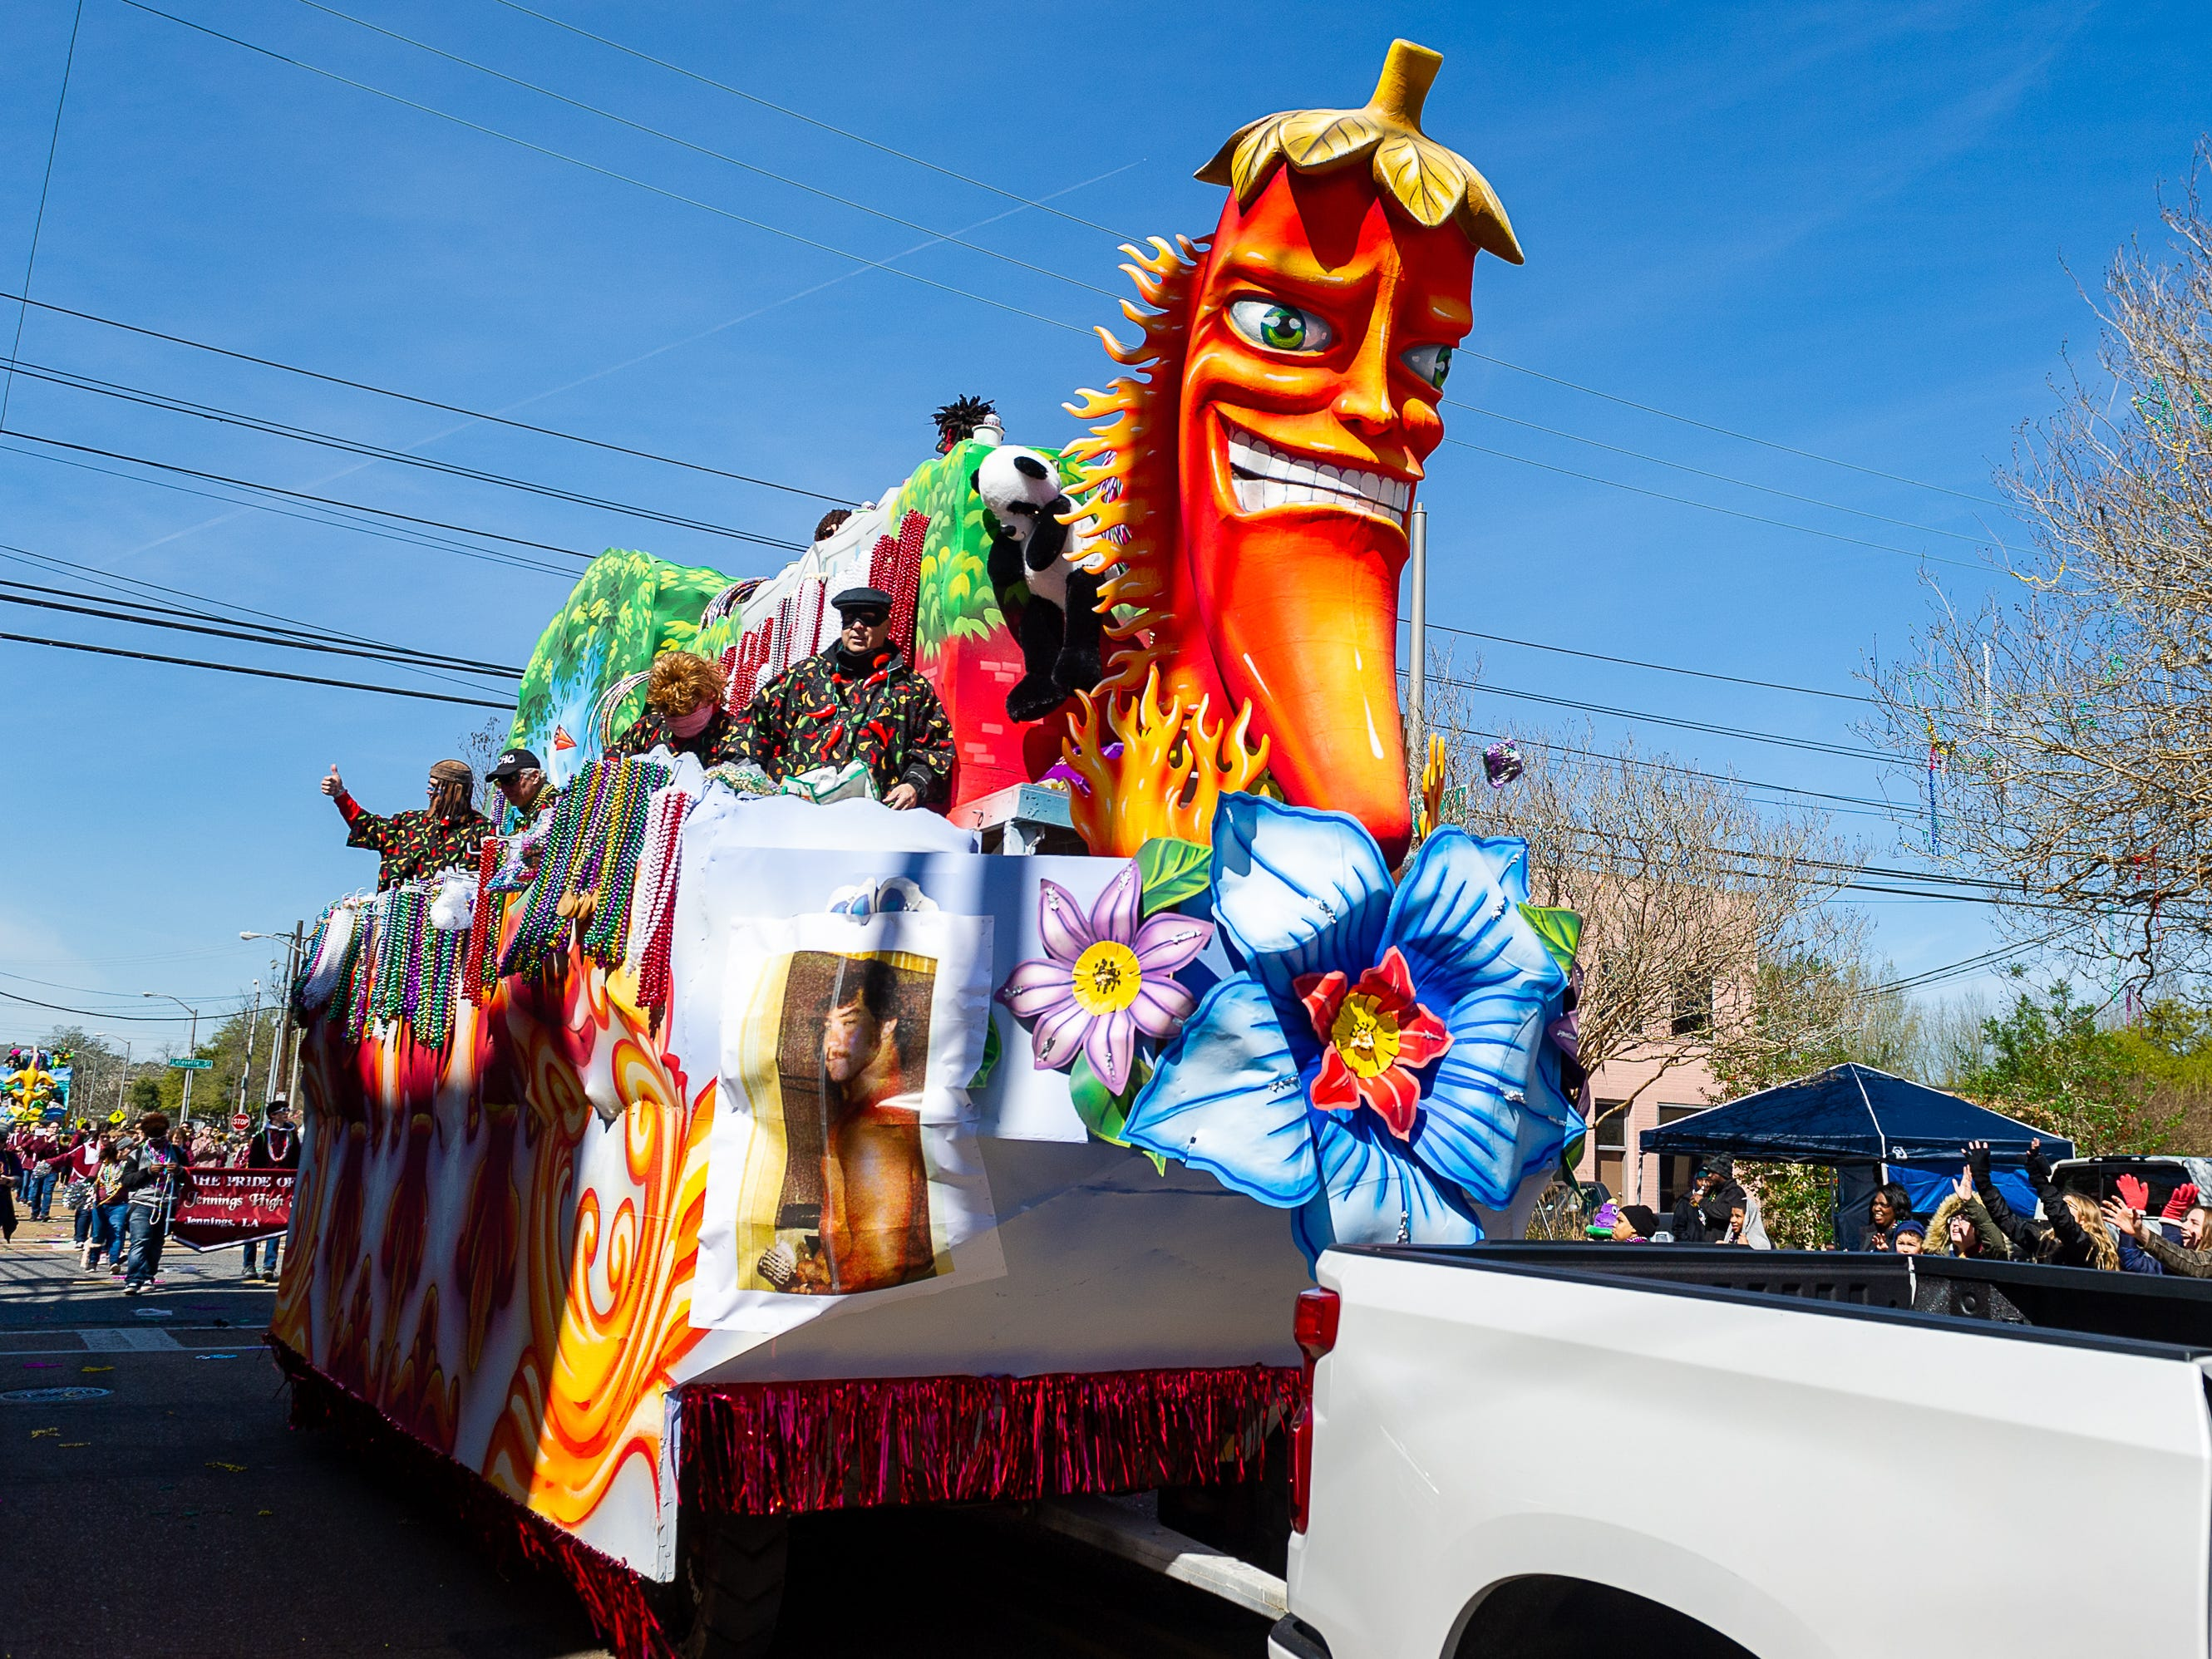 King Gabriel Parade rolling through Lafayette. Tuesday, March 5, 2019.